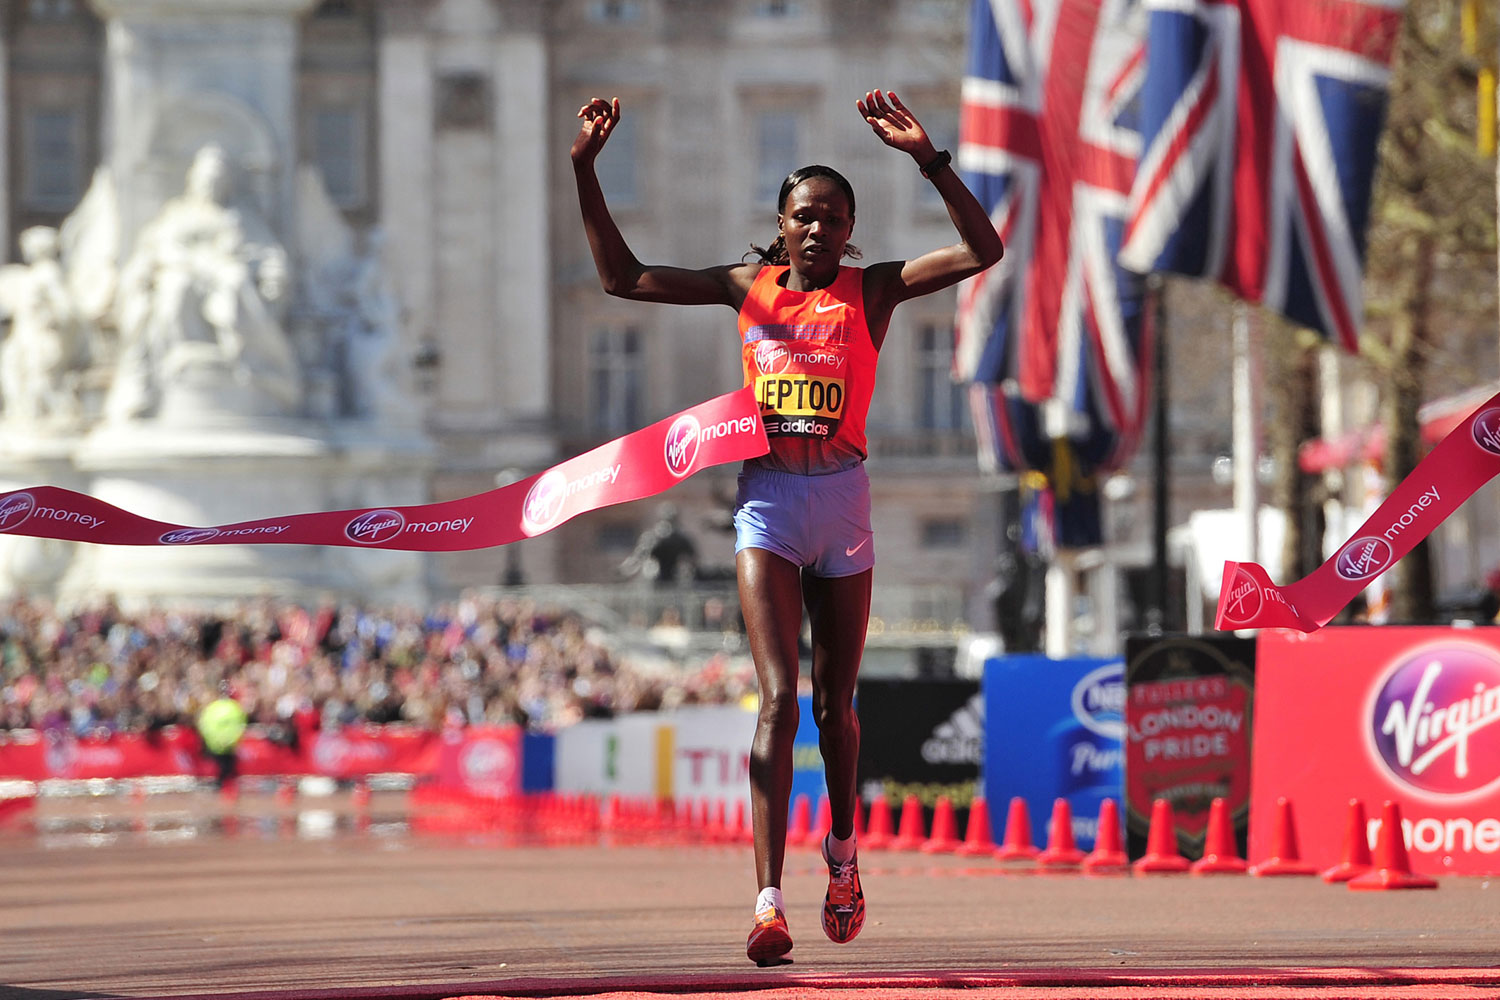 Priscah Jeptoo crosses the finish line to win the women's race in the 2013 London Marathon.